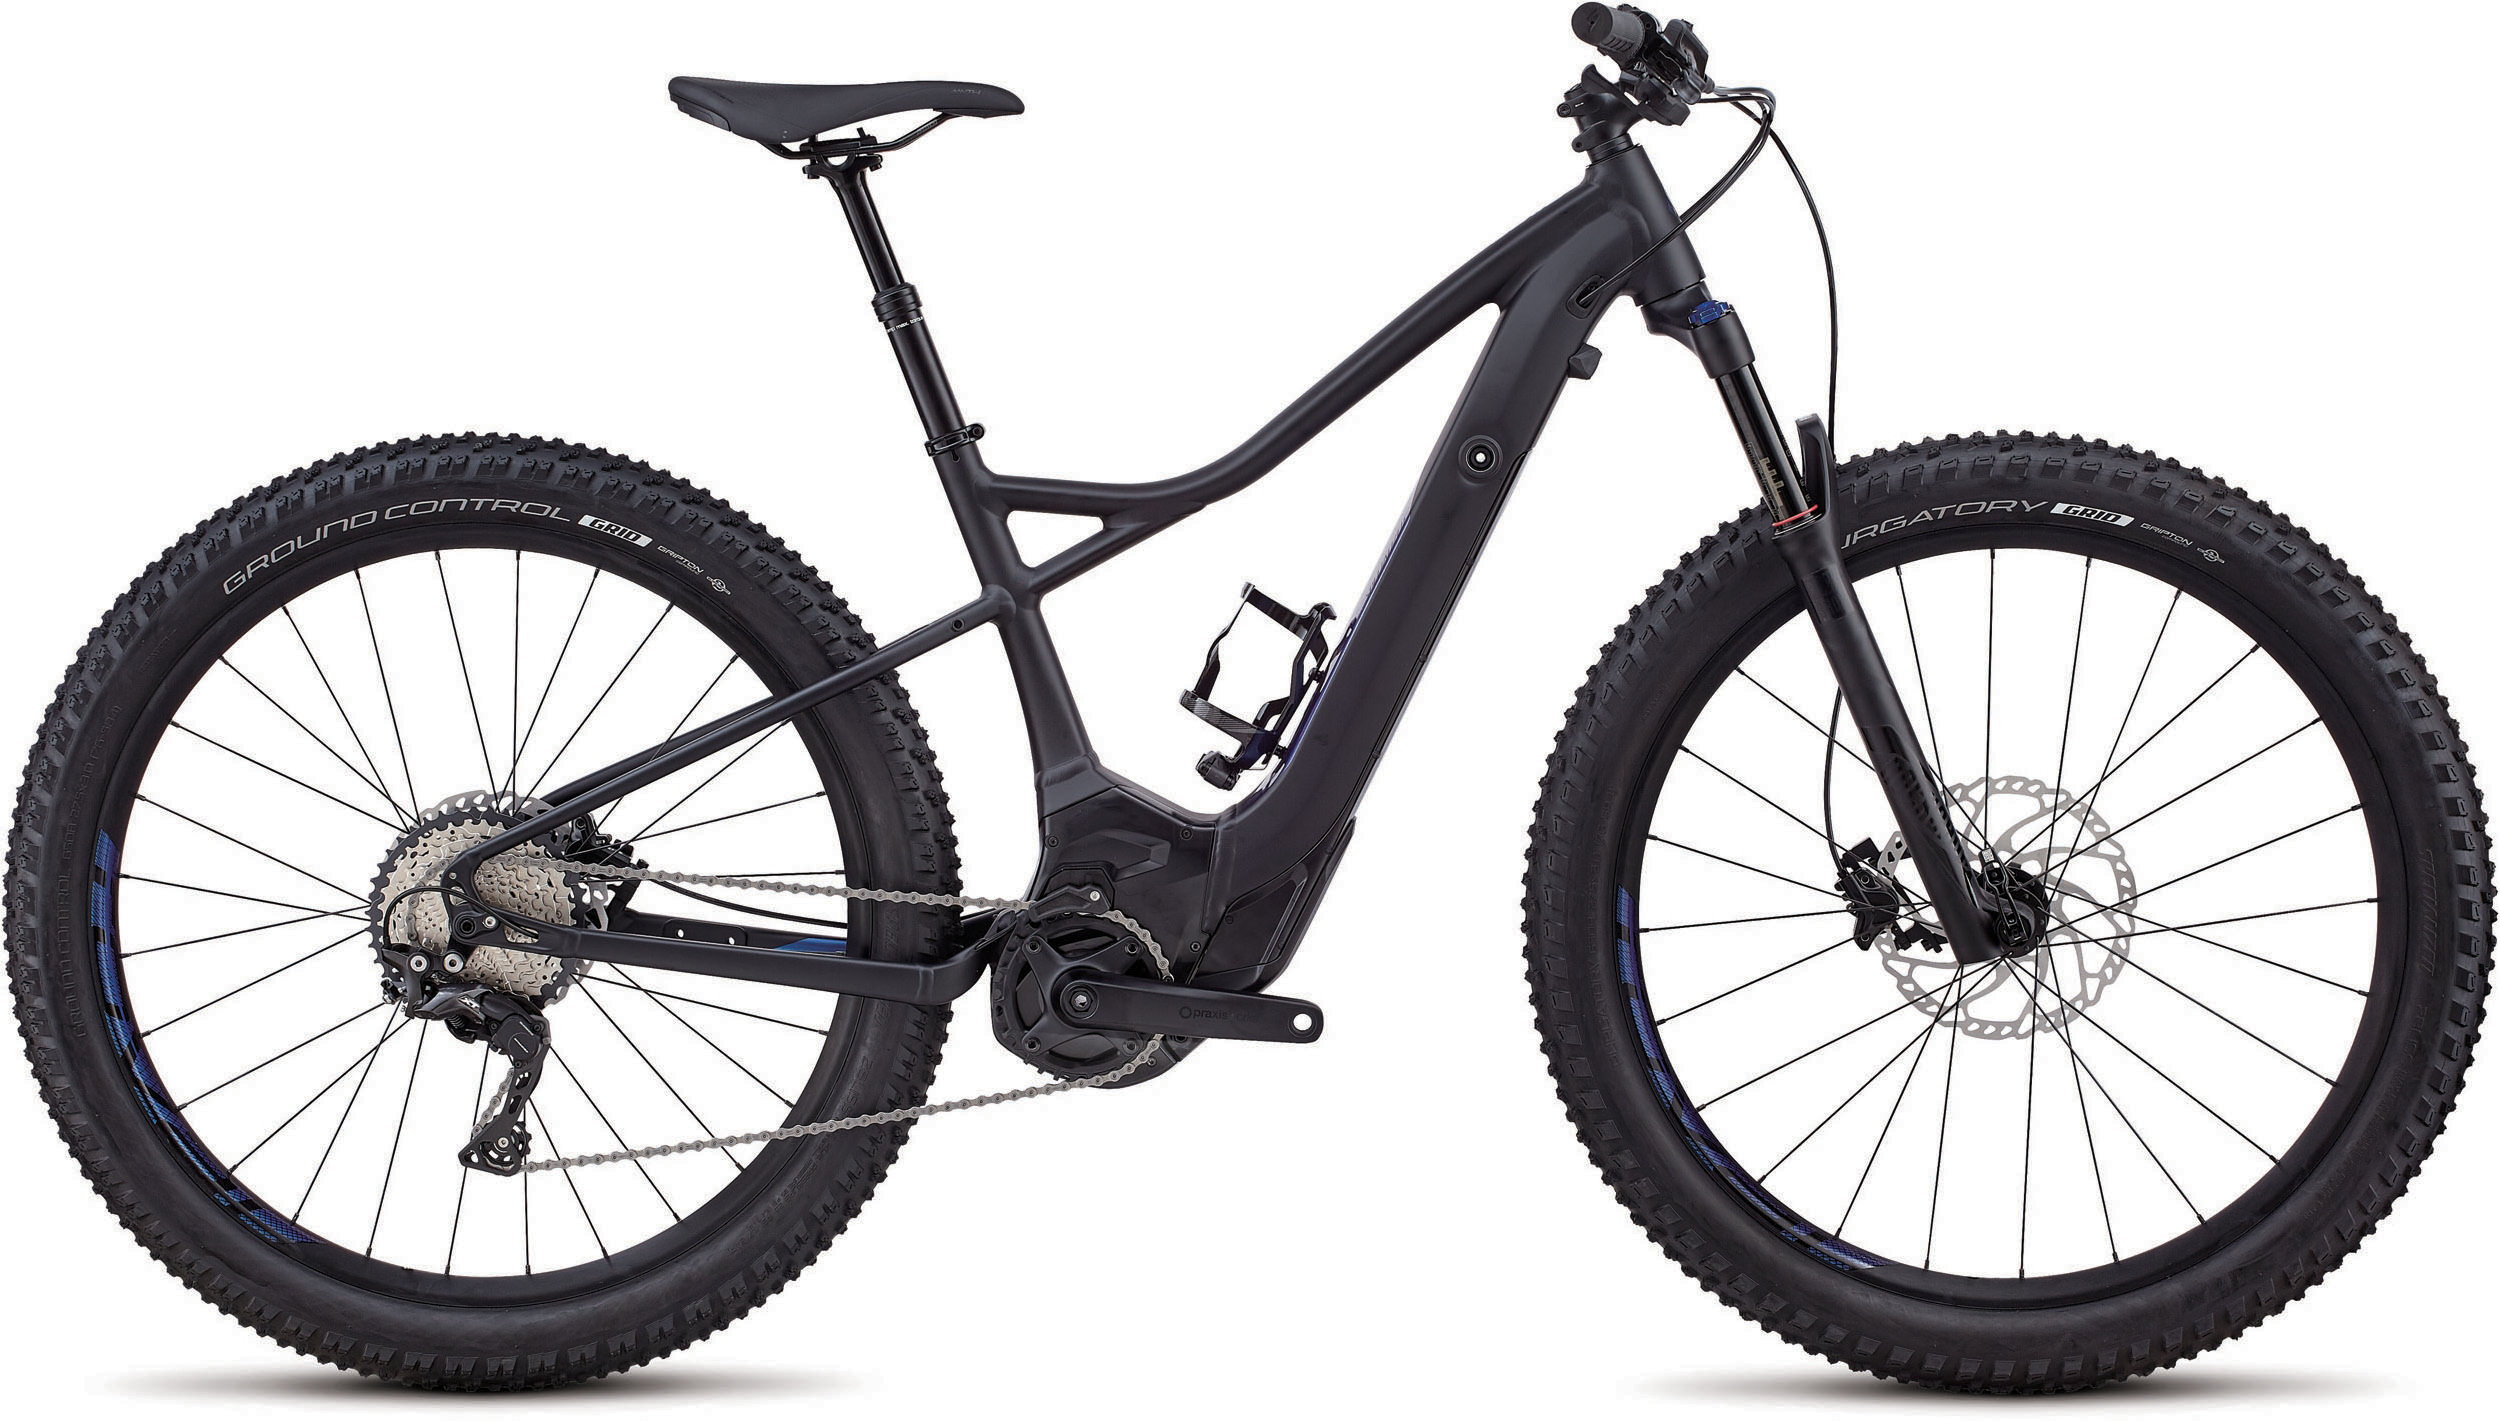 Specialized Women´s Turbo Levo Hardtail Comp 6Fattie Satin Gloss Blk/Chamaleon Decals S - Bike Maniac